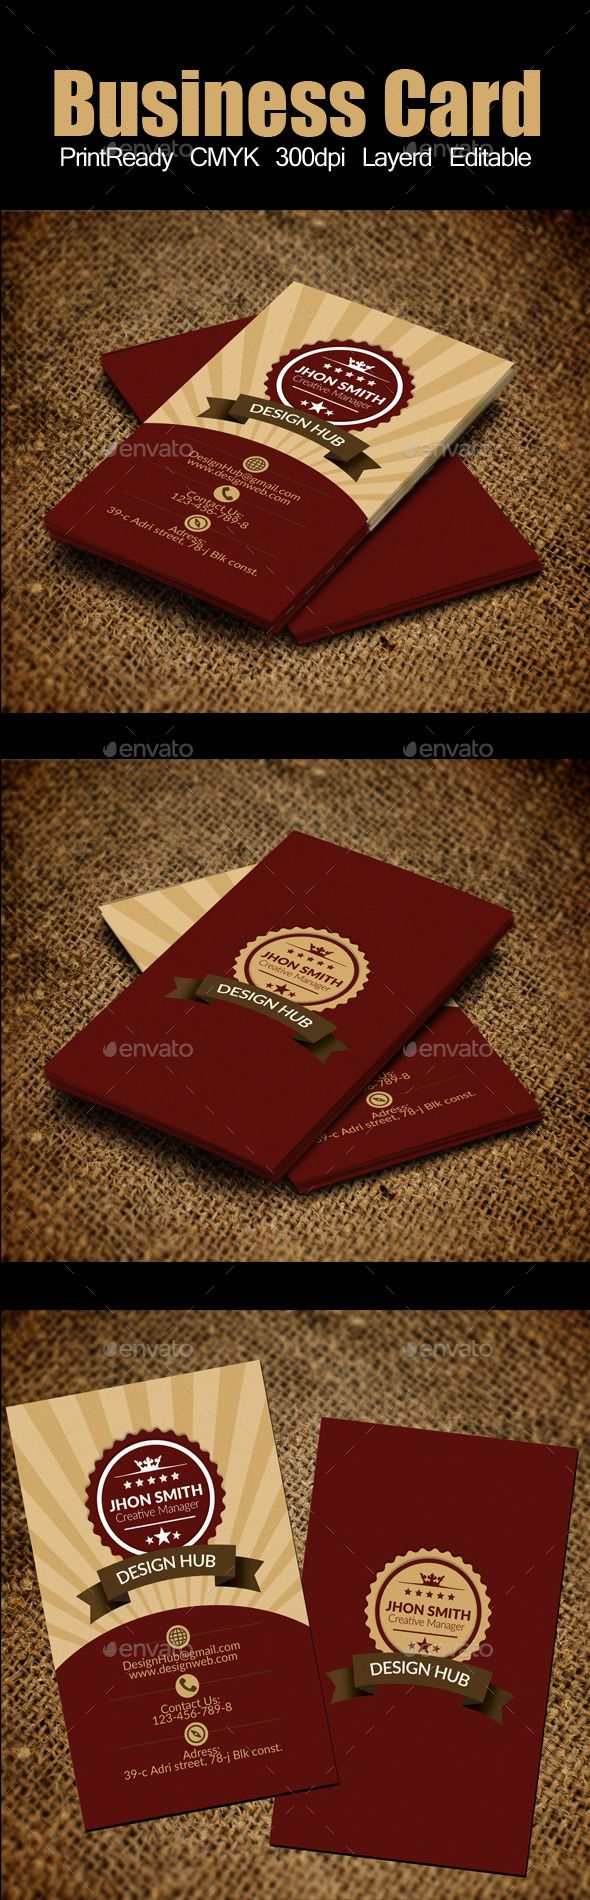 Best 25+ Vintage business cards ideas on Pinterest | Leather ...